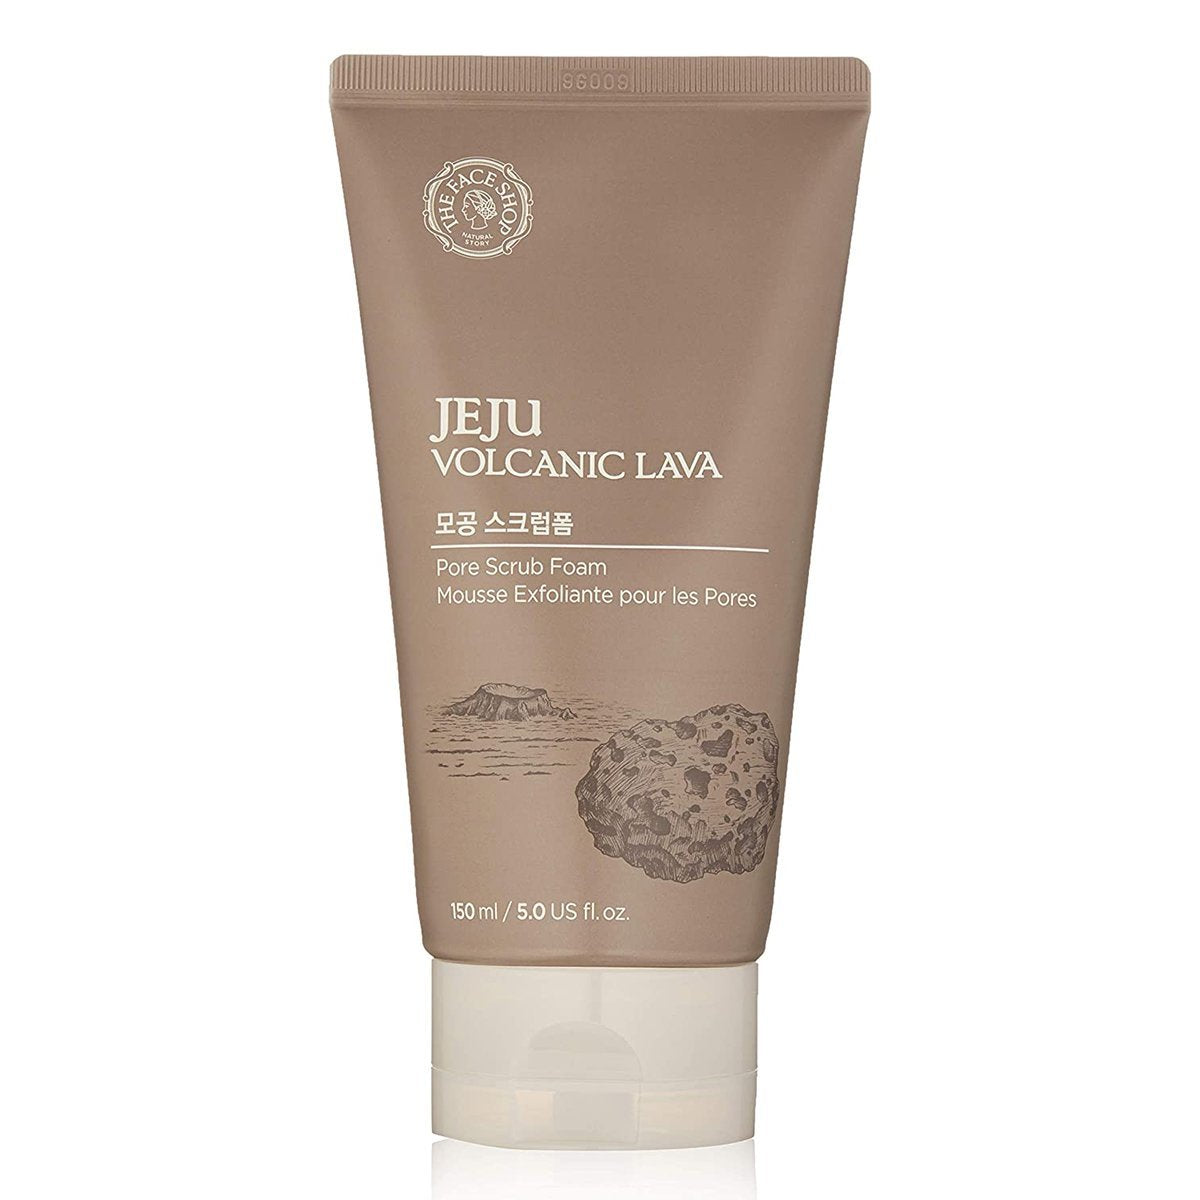 The FACE SHOP Jeju Volcanic Scrub Foam